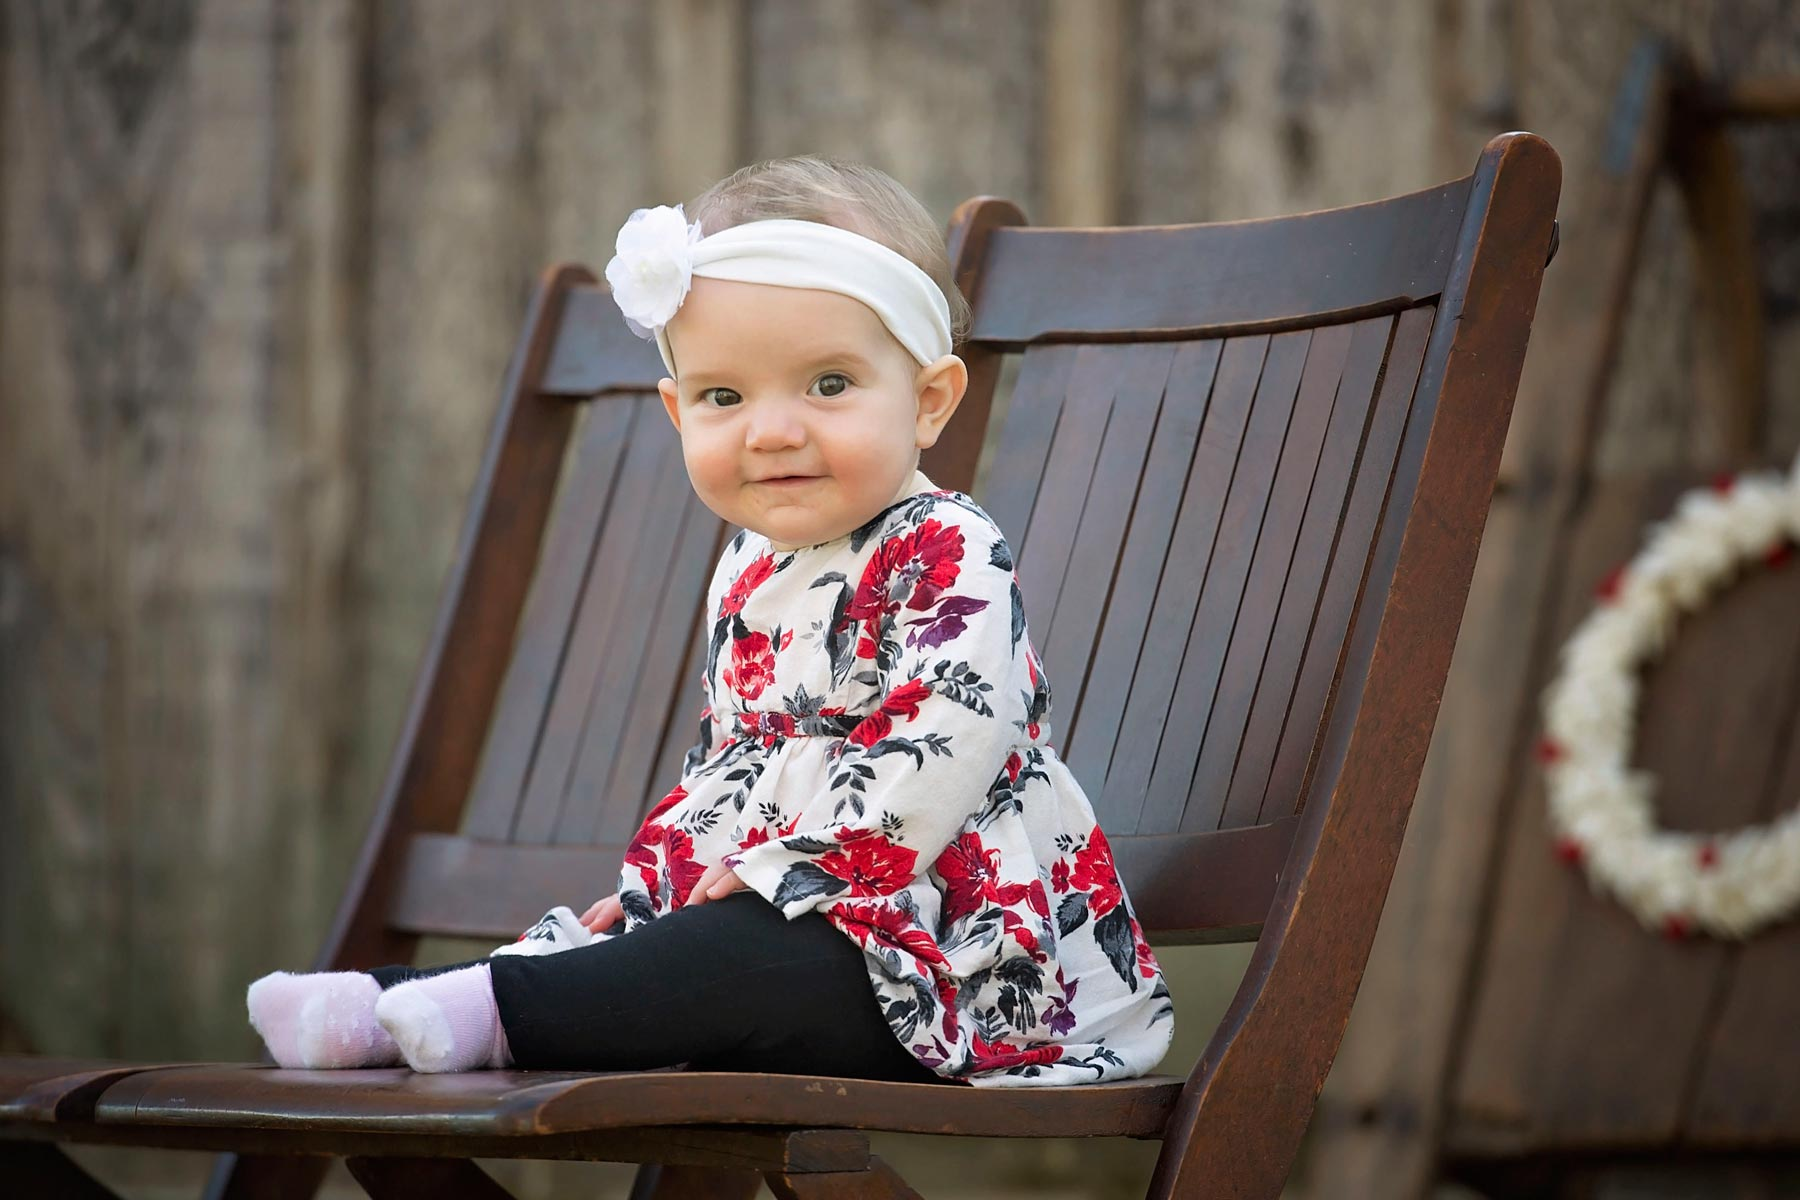 baby in floral top sits on bench looking to her left at camera